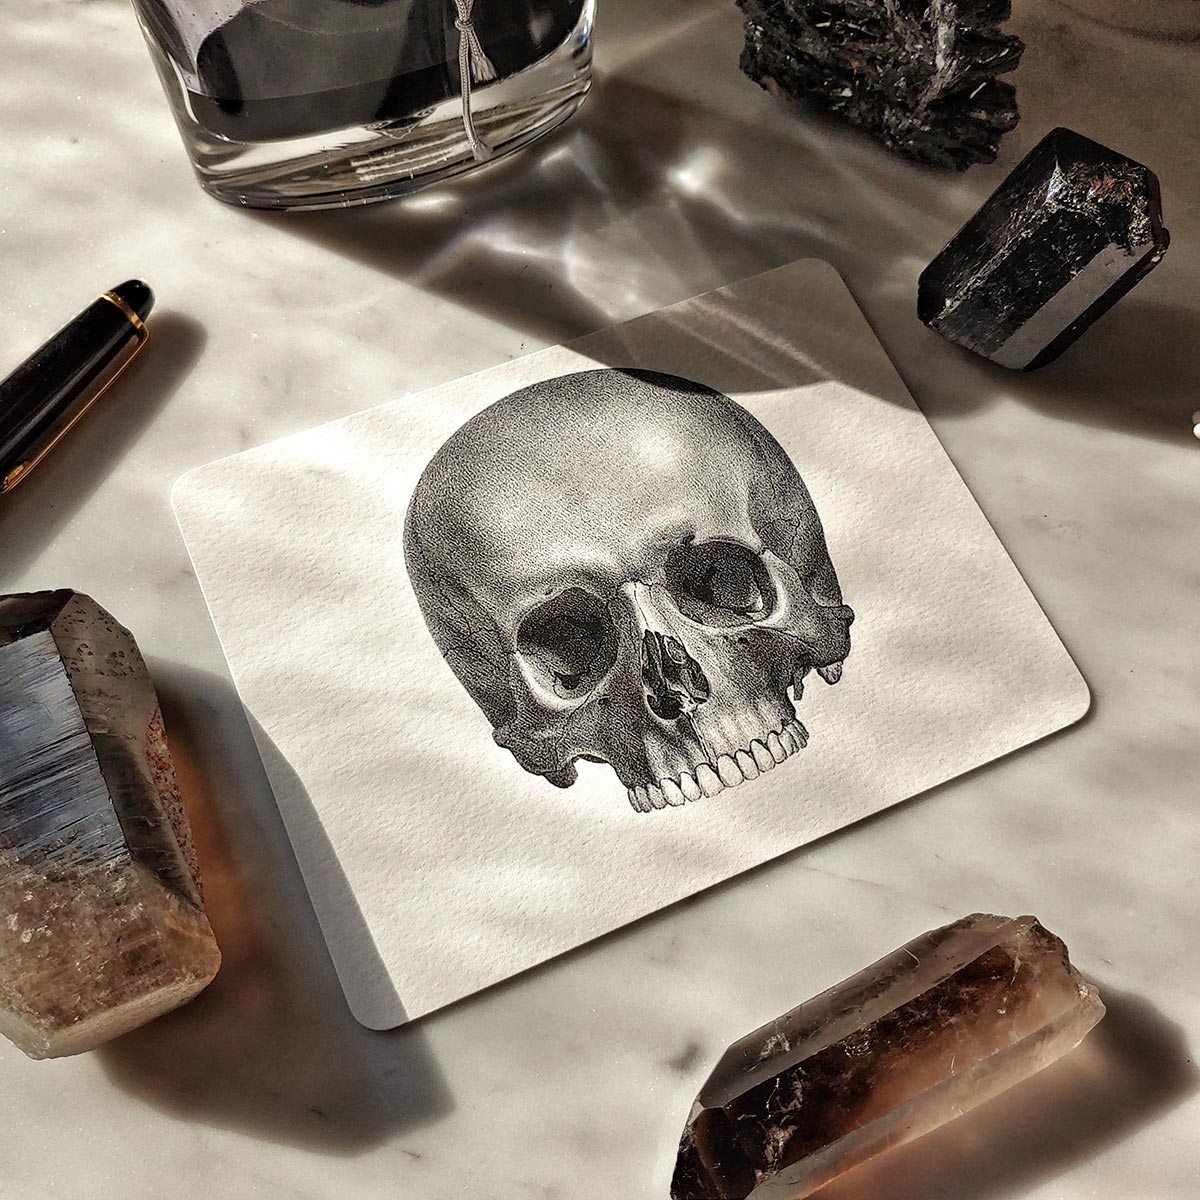 The Punctilious Mr. P's 'The Skull' note card with crystals laid around it